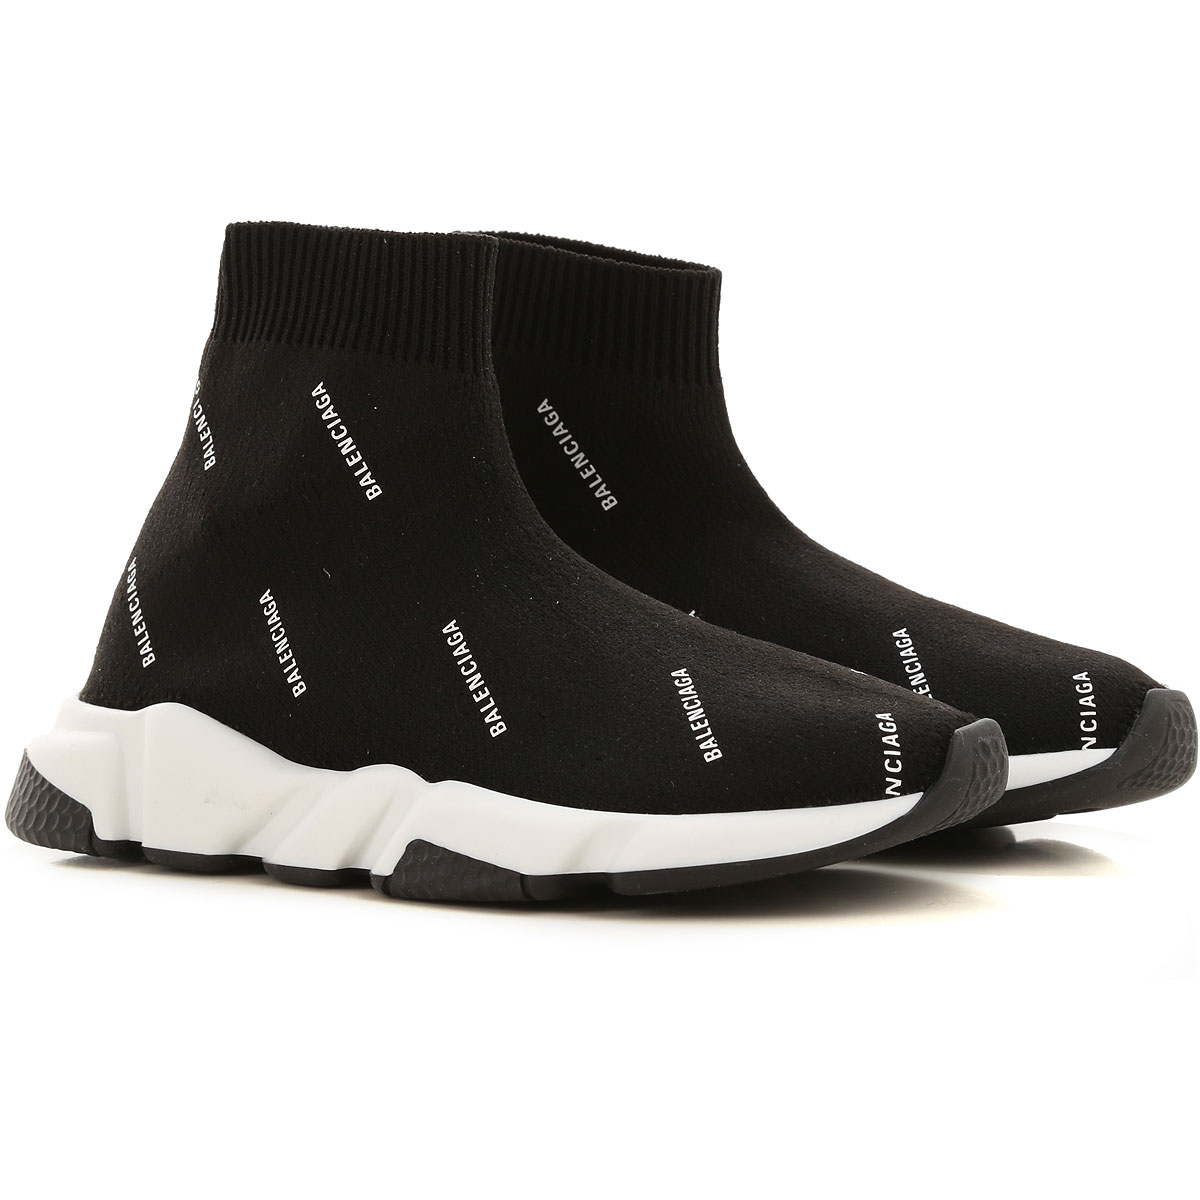 Balenciaga Kids Shoes for Boys On Sale, Black, Fabric, 2019, 12-12.5 13-13.5